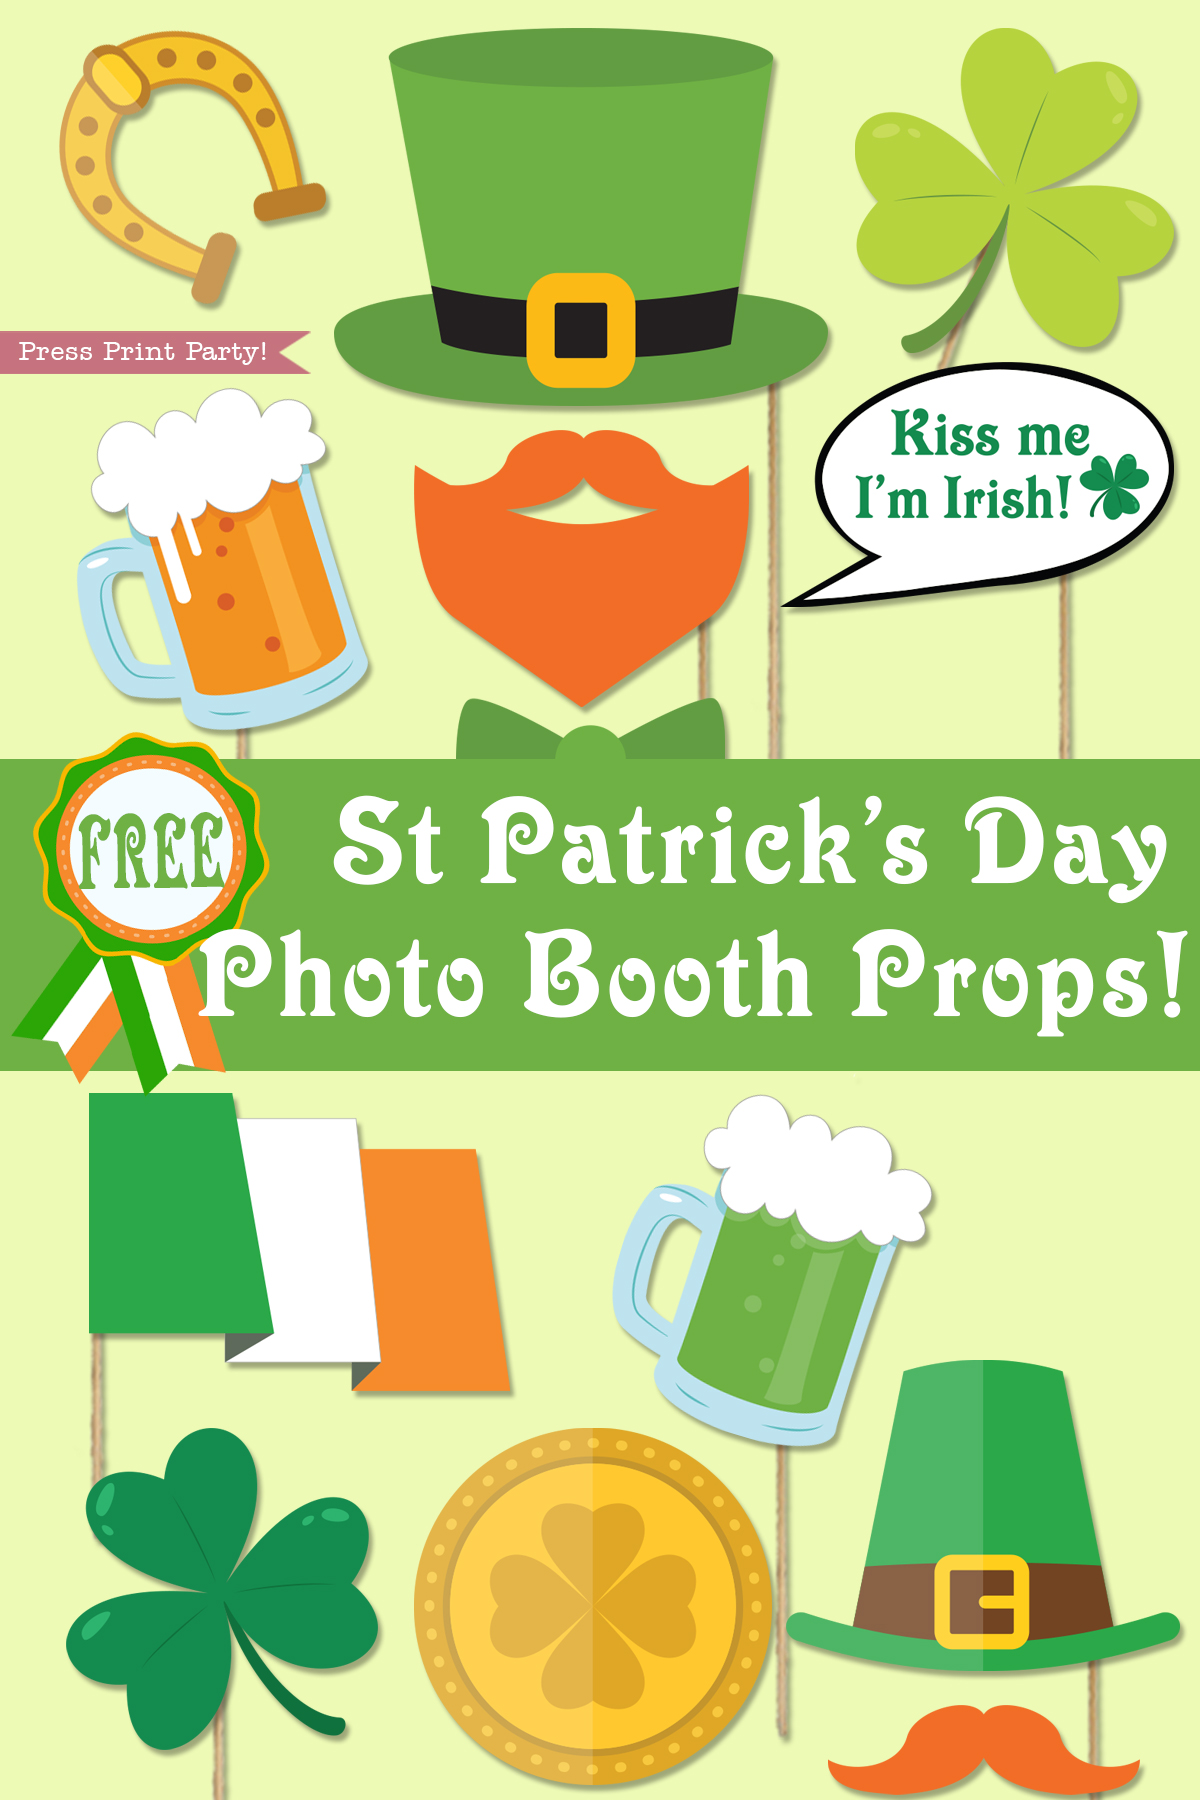 st patrick s day photo booth props free printable press print